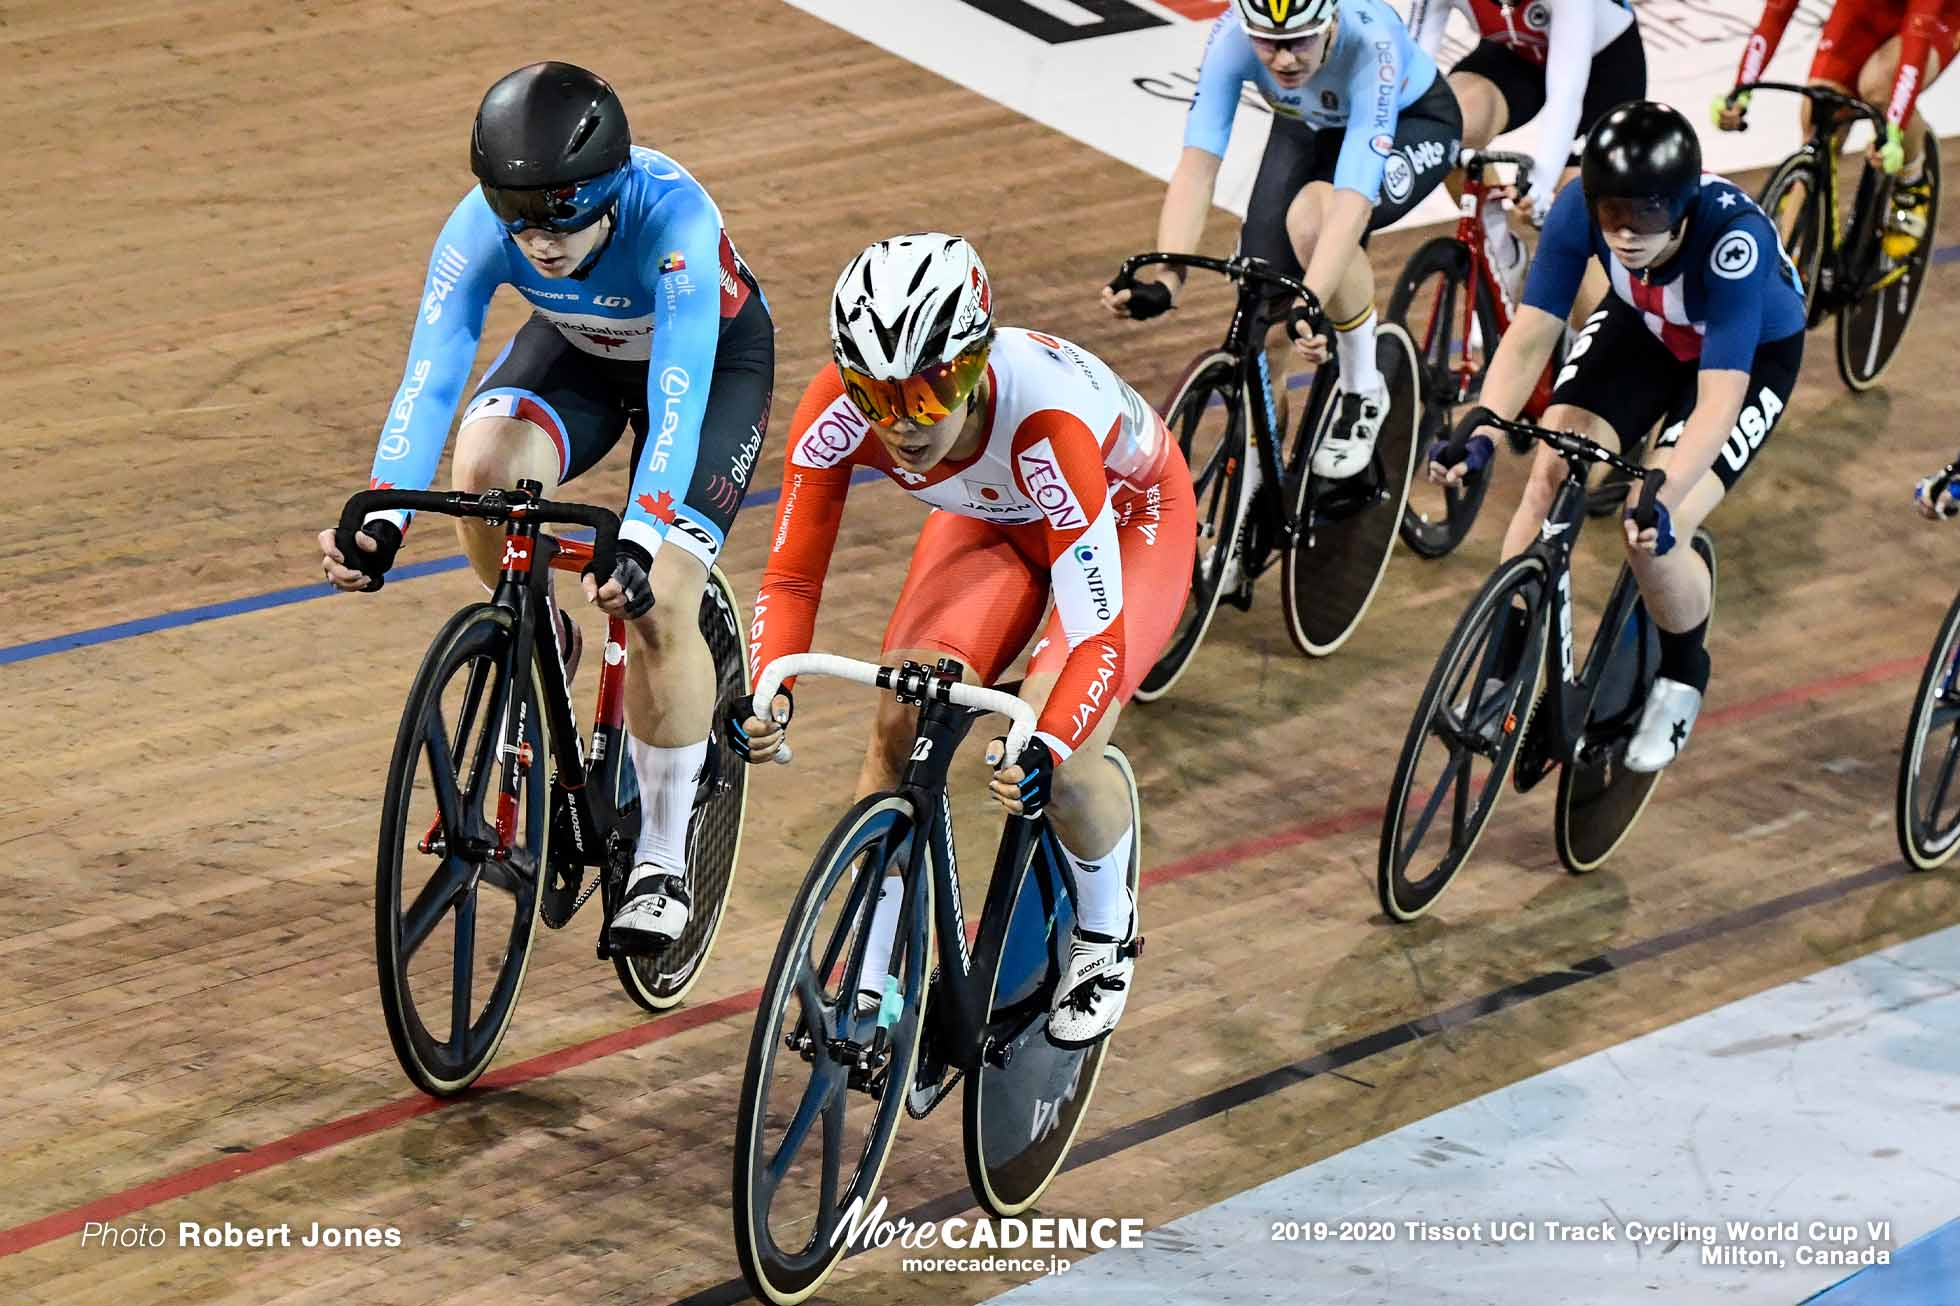 Women's Omnium / TISSOT UCI TRACK CYCLING WORLD CUP VI, Milton, Canada, 中村妃智